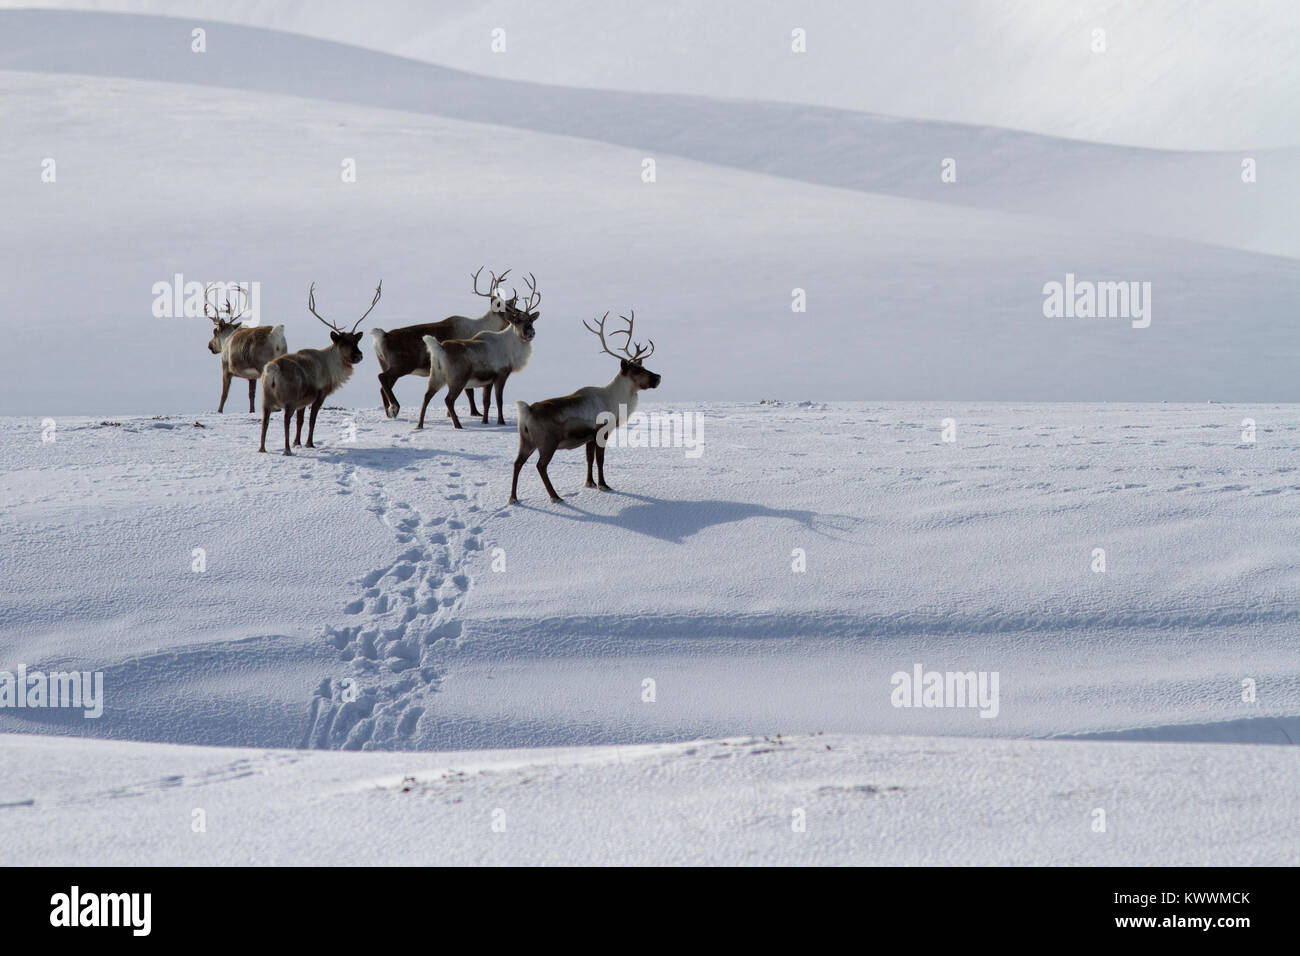 A small herd of Reindeer standing on a snow-covered hill in a winter's day - Stock Image